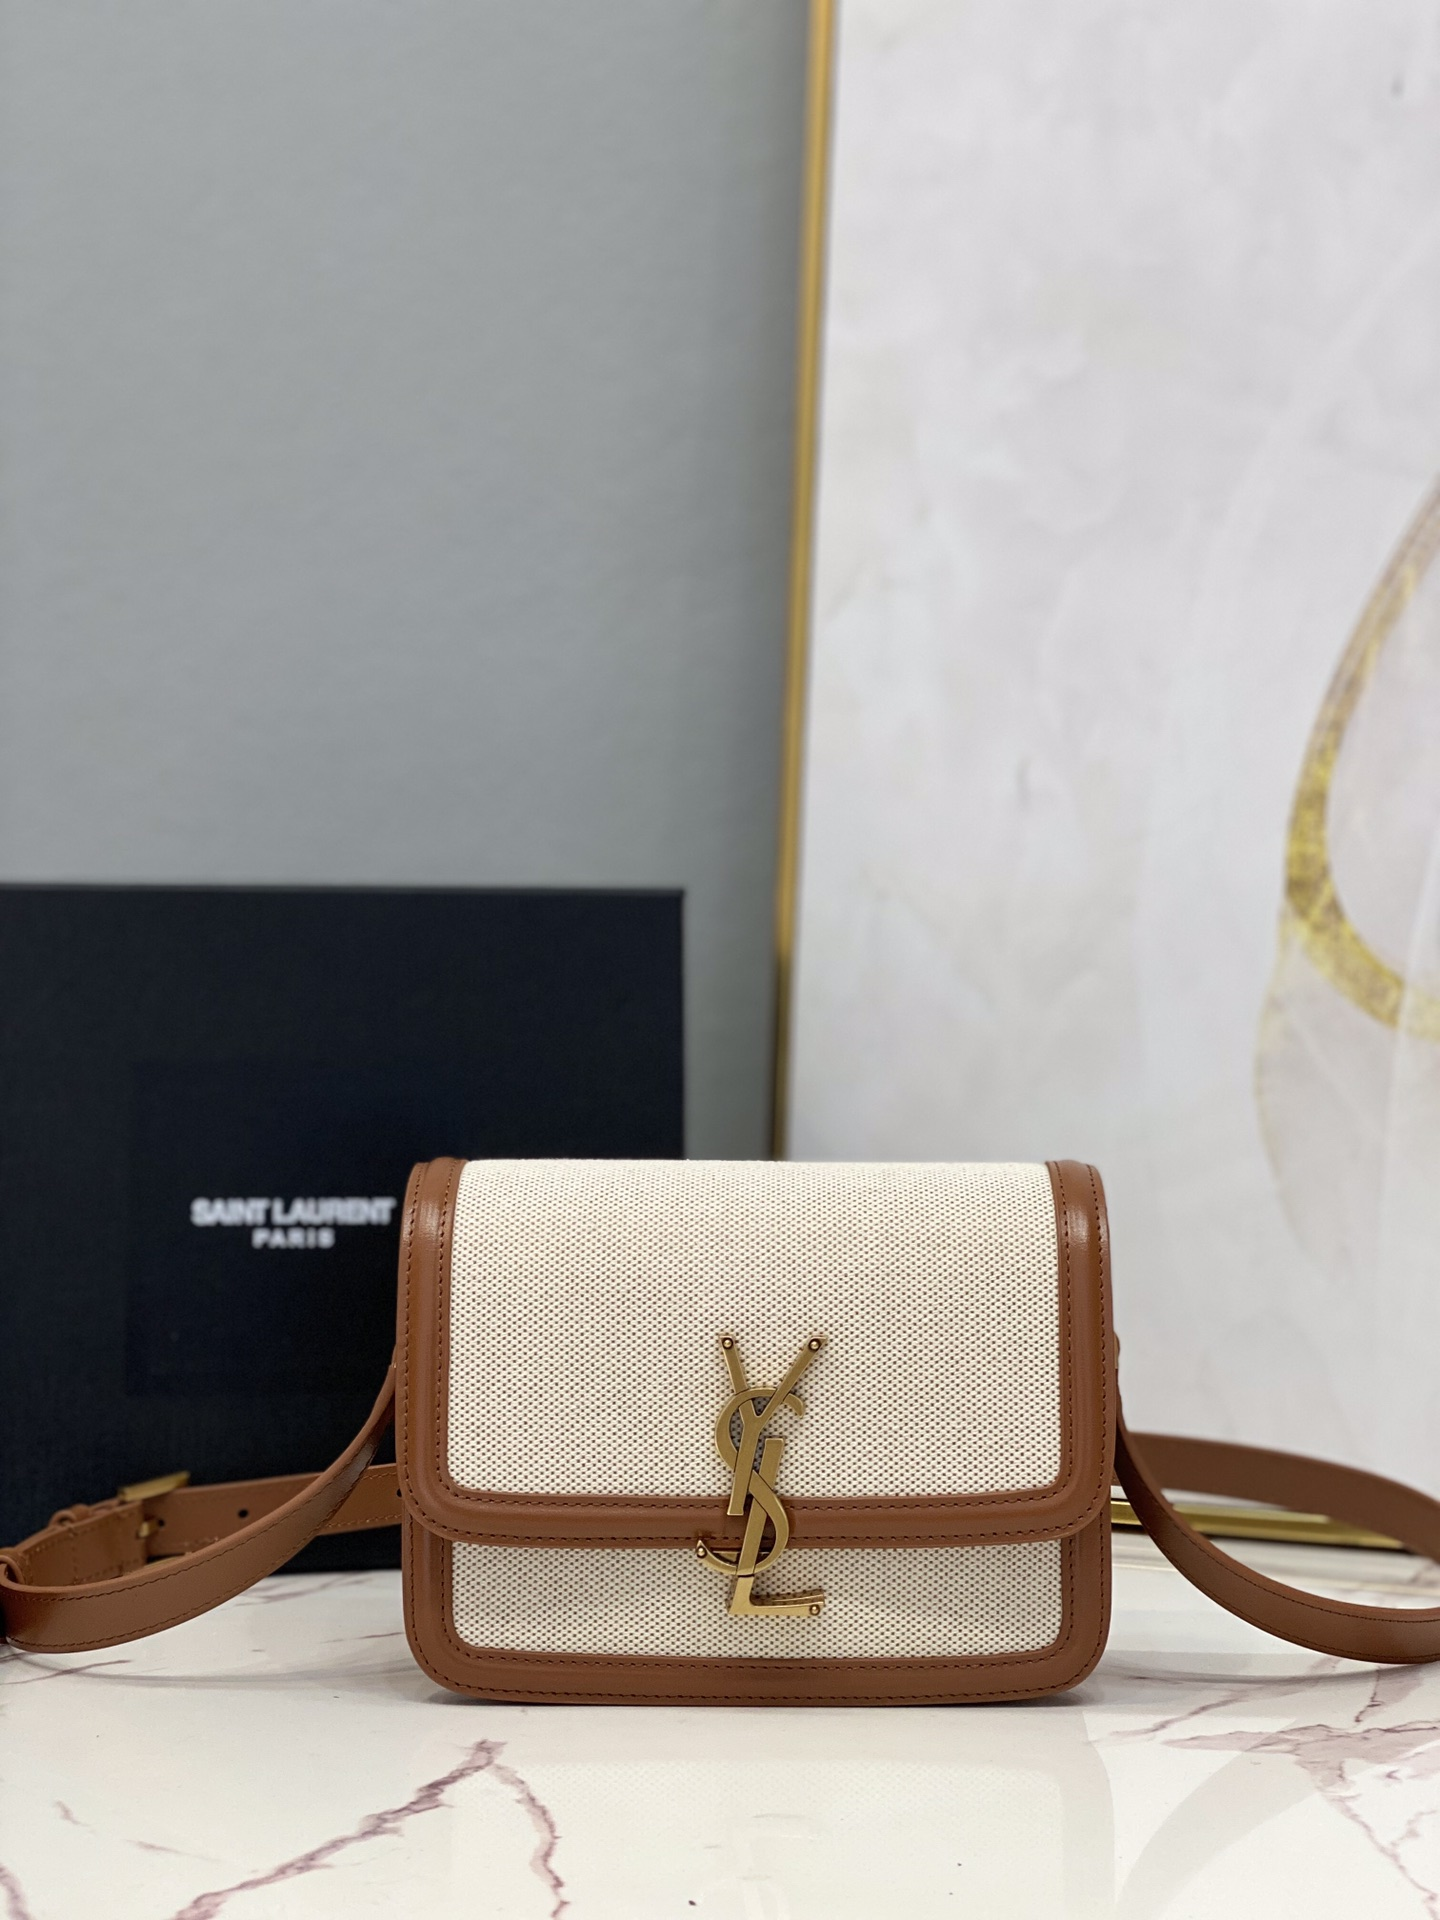 2021 cheap Saint Laurent solferino small satchel in cotton canvas and leather